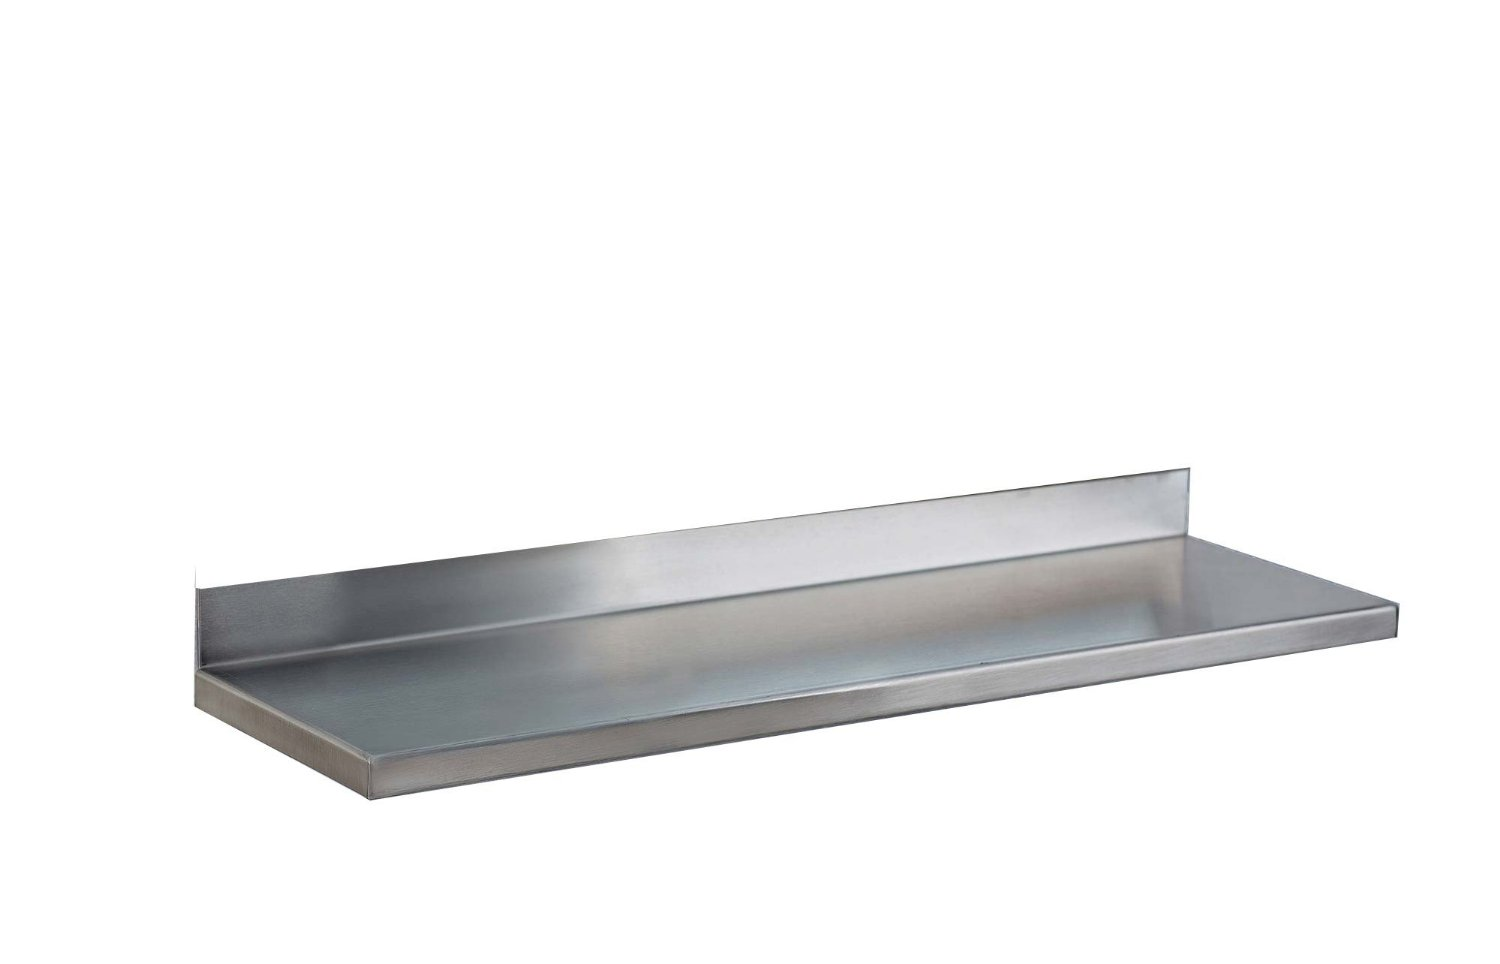 60-inch x 8-inch, Integral shelf, satin finish